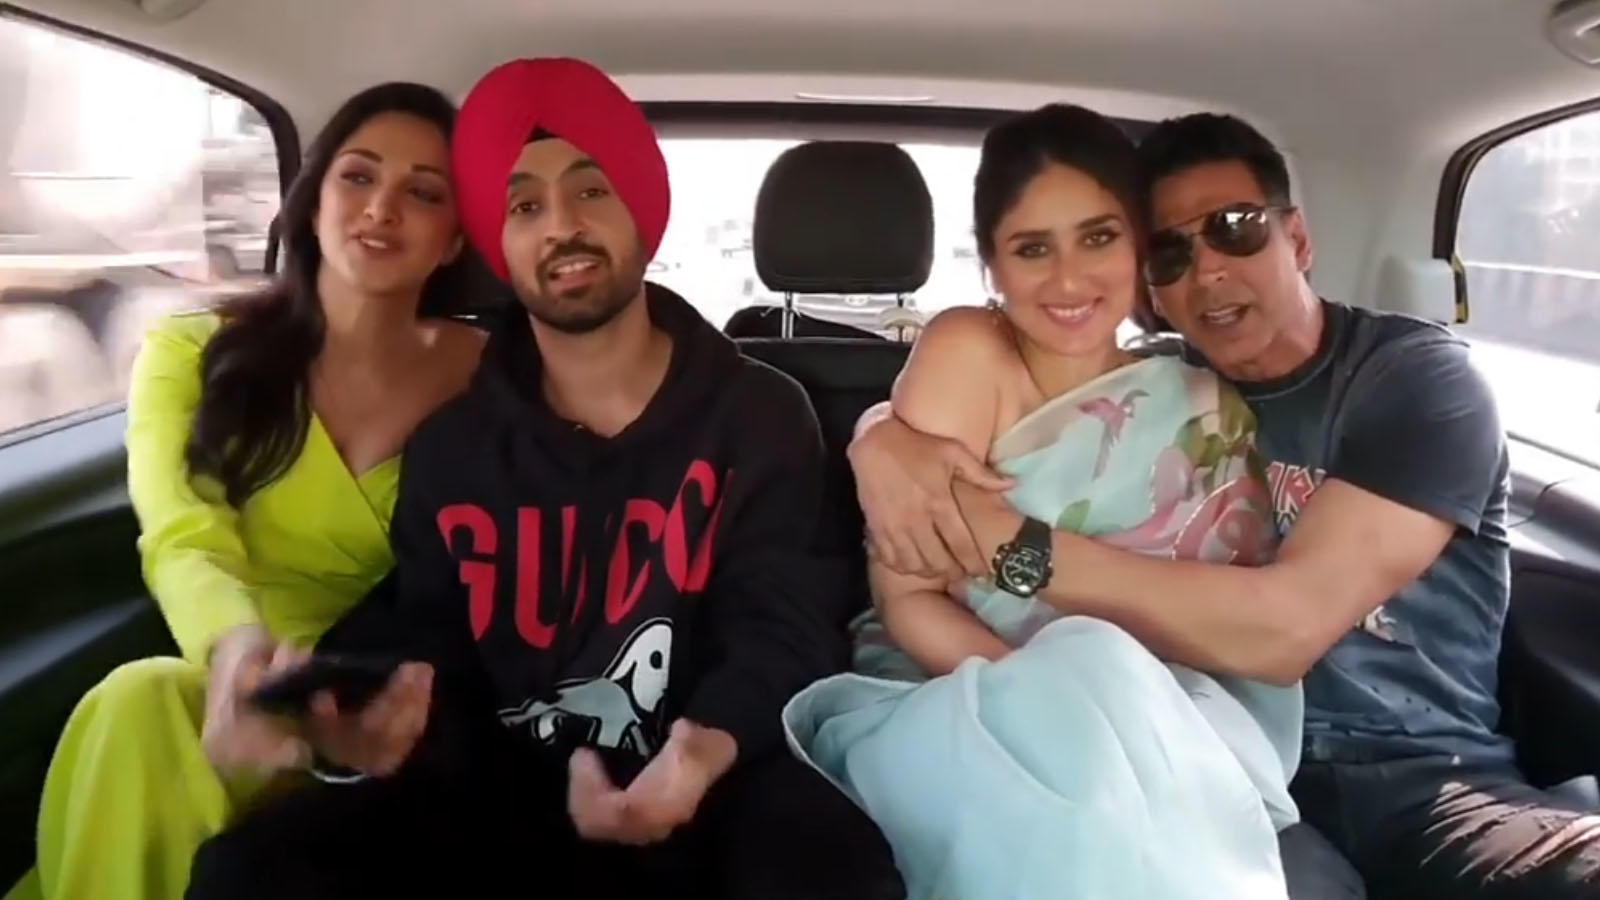 'Good Newwz' stars Akshay Kumar, Kareena Kapoor, Diljit Dosanjh and Kiara Advani's jam session in car in just unmissable!